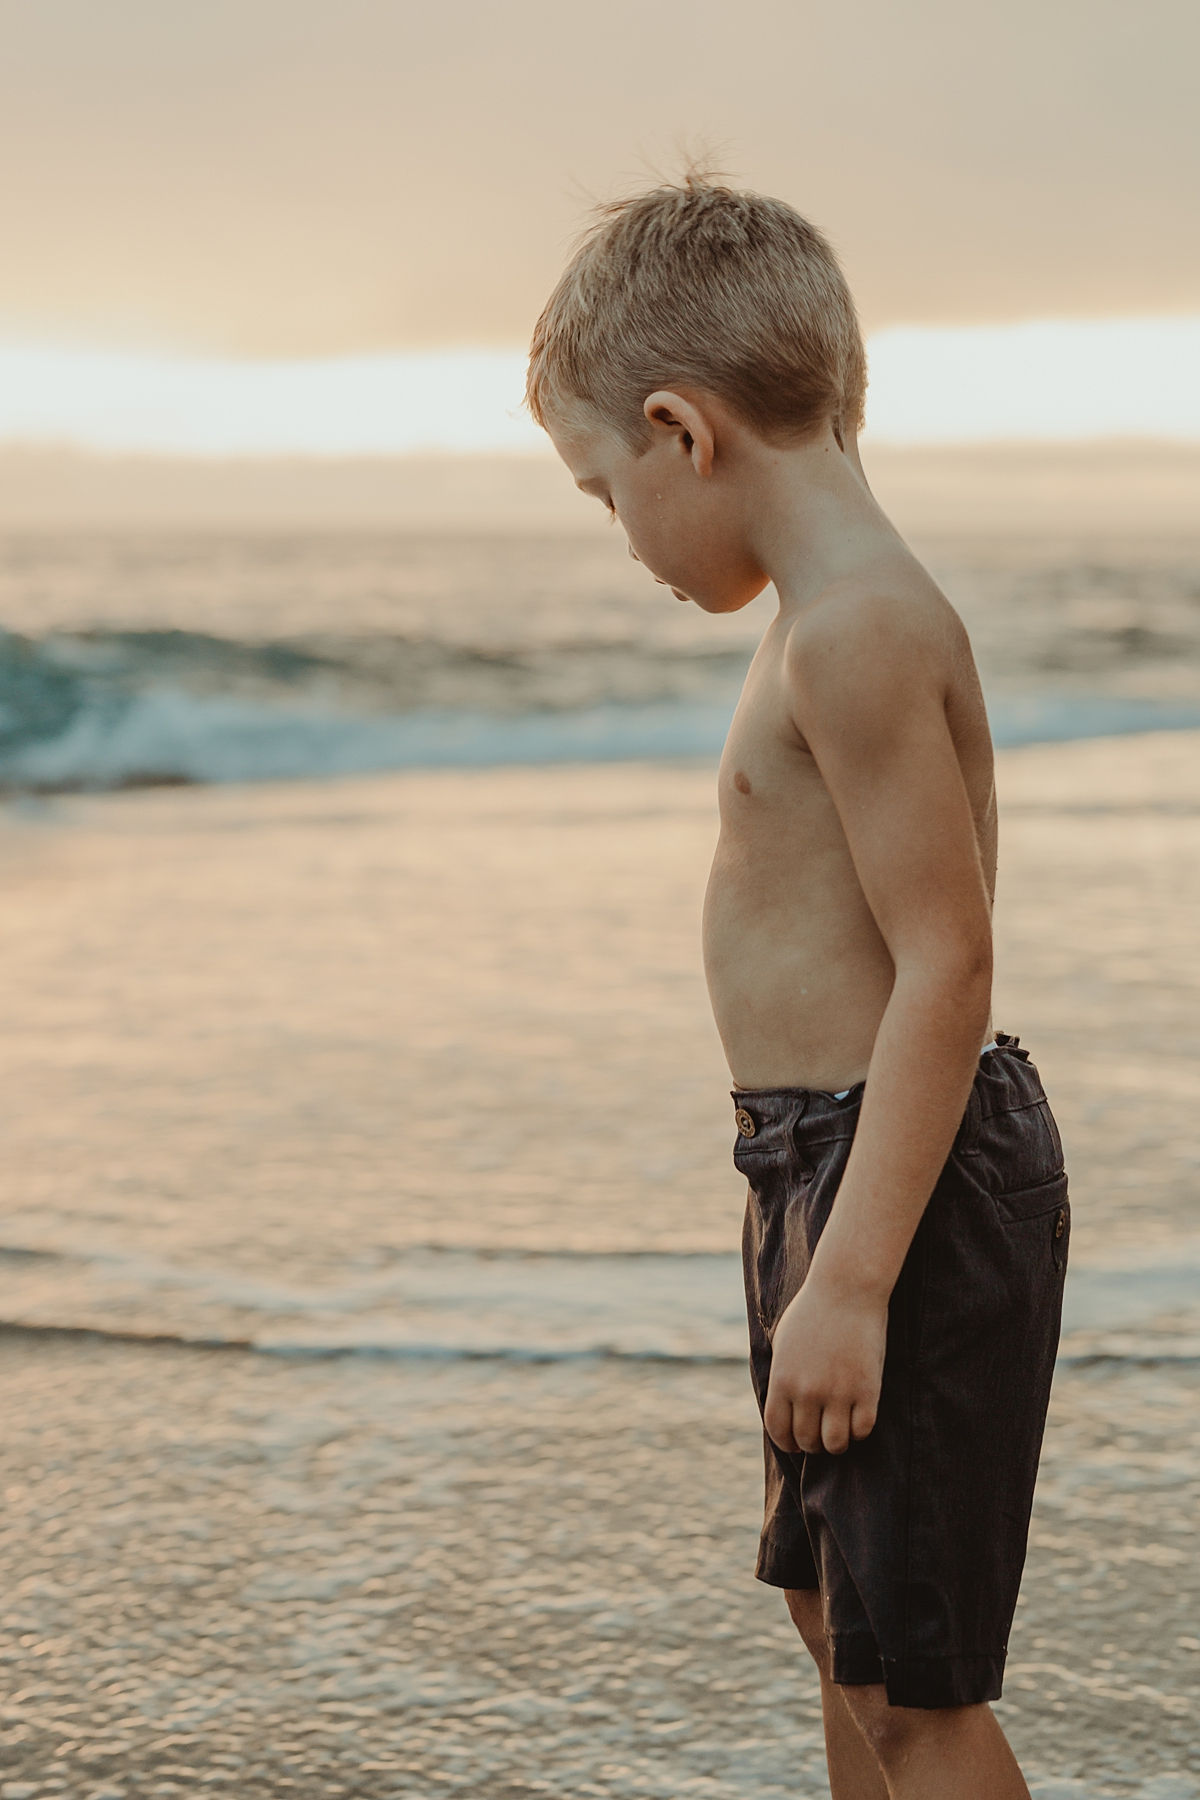 Orange County family photographer. Portrait of shirtless boy looking pensively at the waves at sunset at Table Rock Beach Laguna Beach during photo session with Krystil McDowall Photography